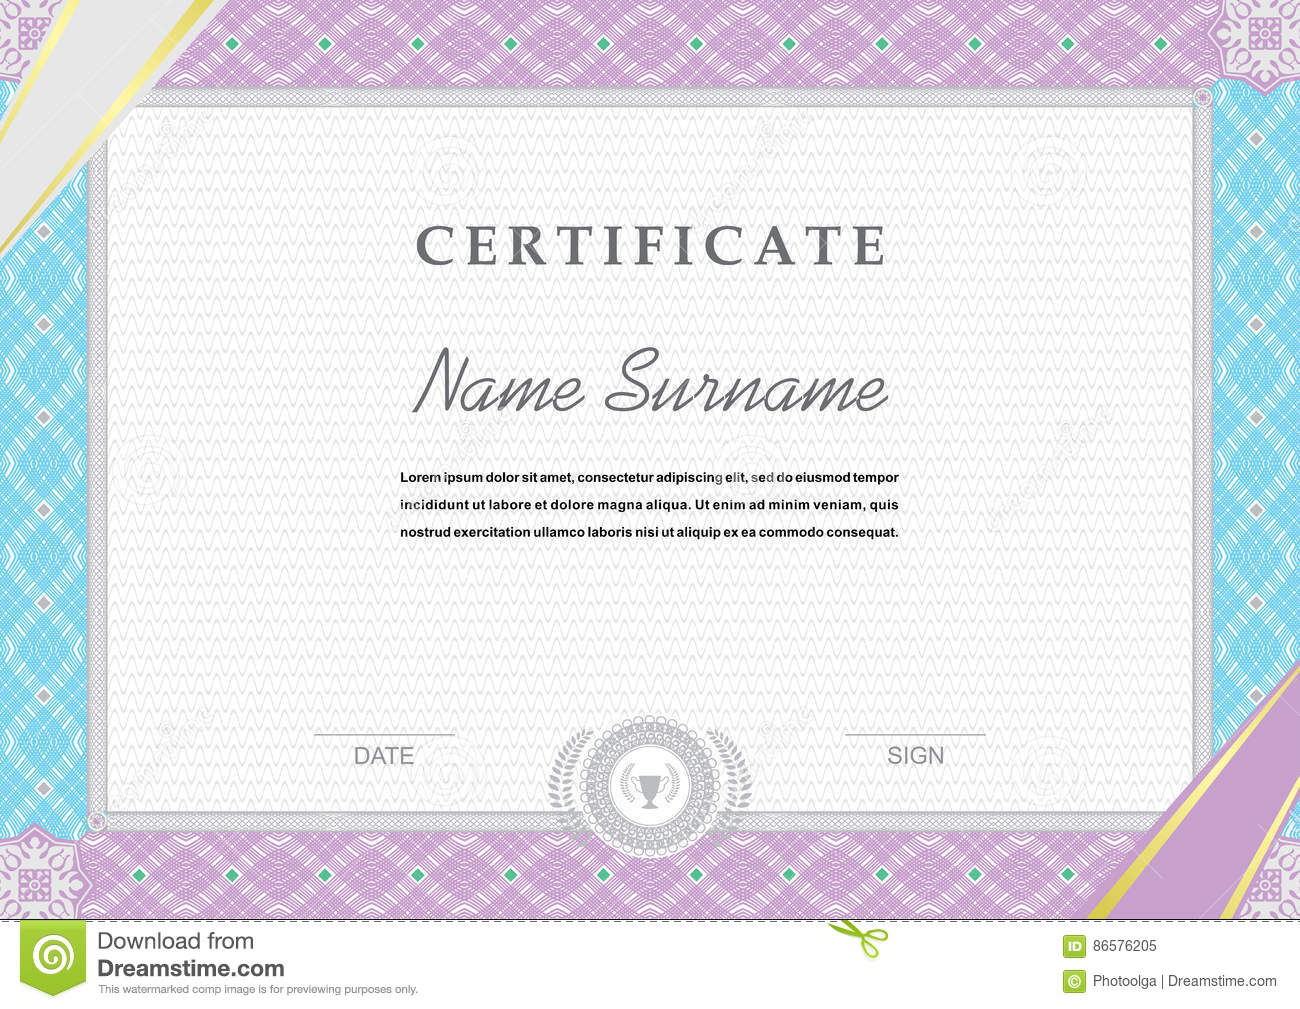 blue pink border official white certificate ribbons in the corners